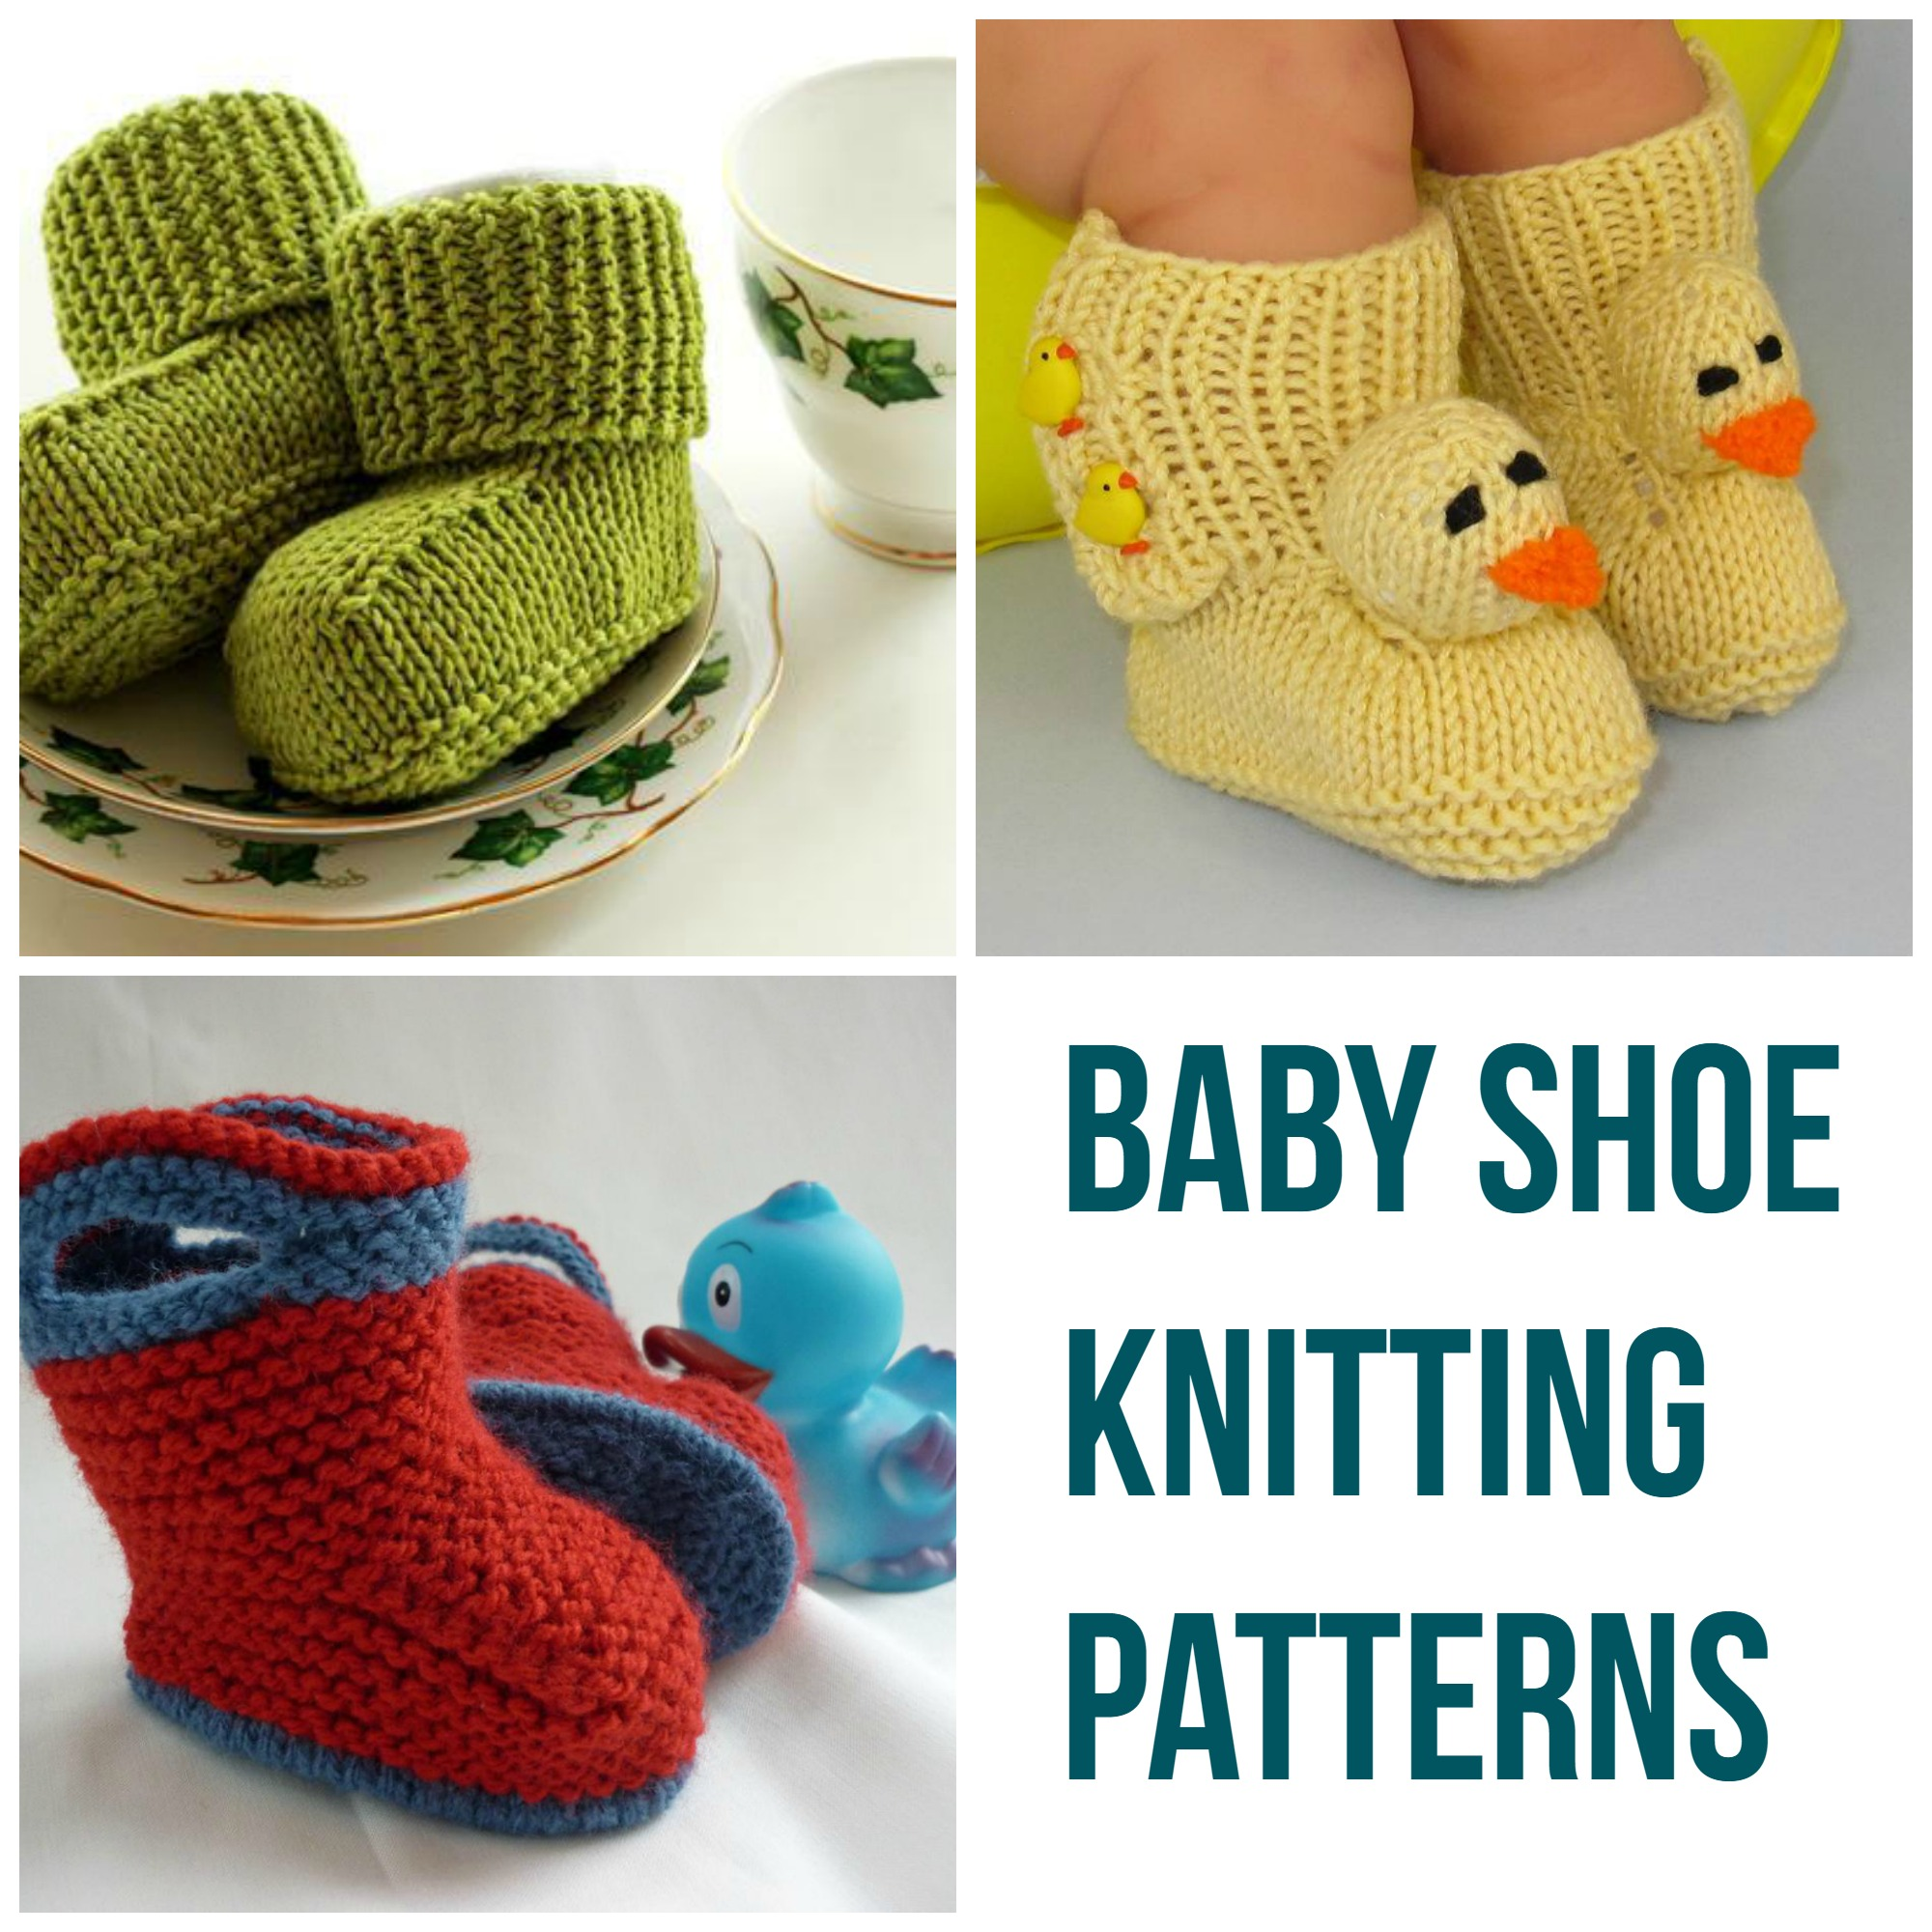 Baby Shoe Knitting Patterns